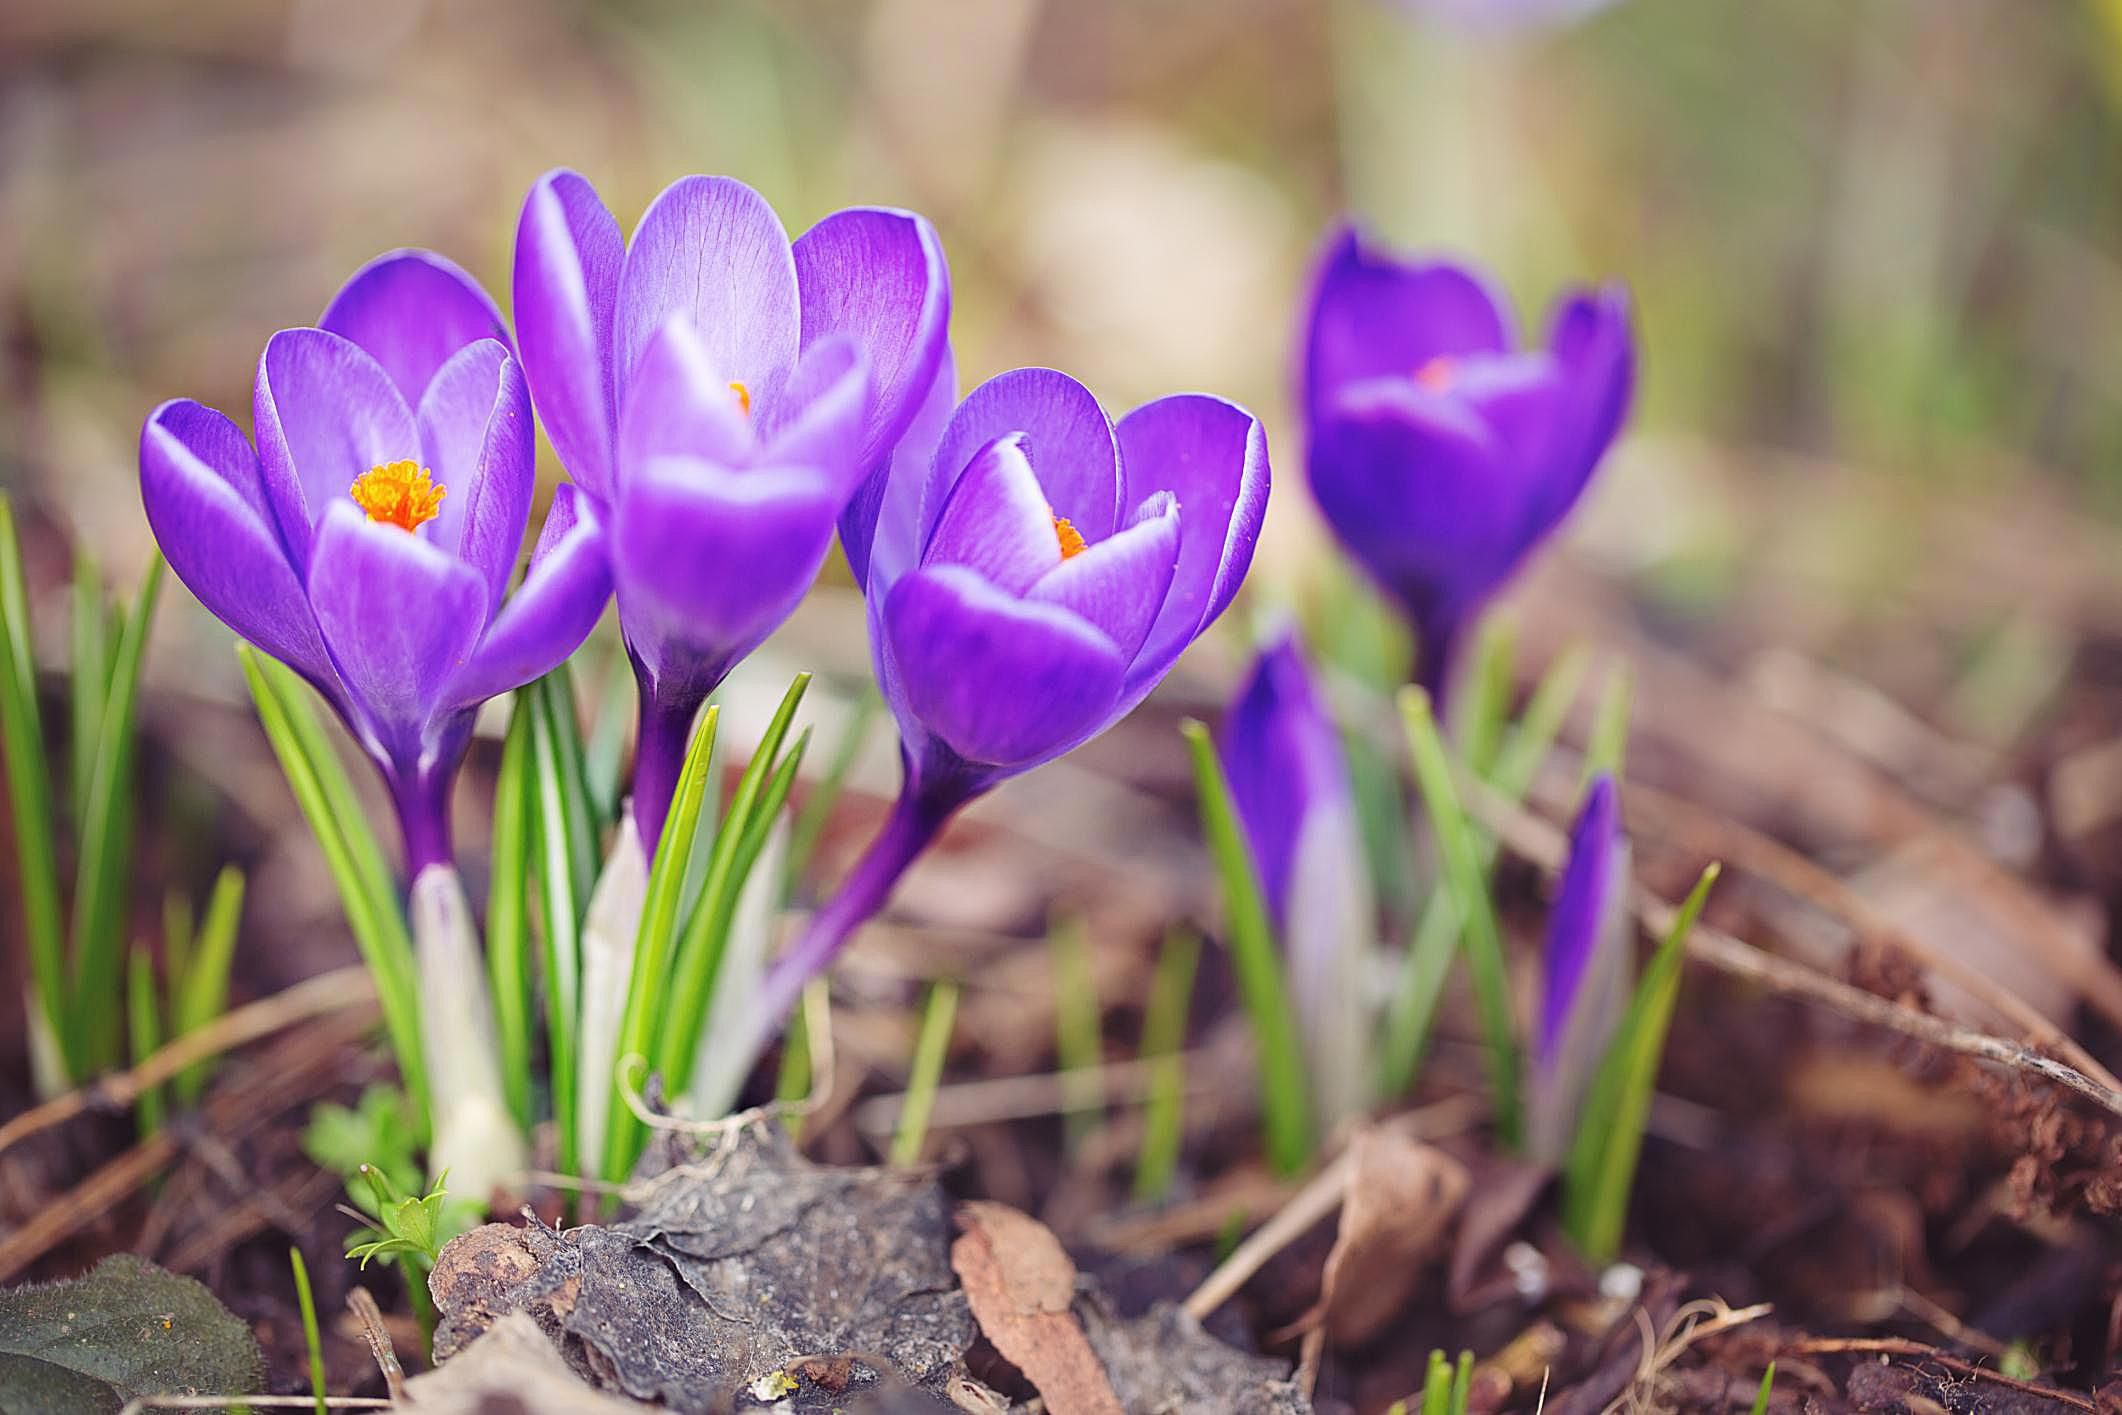 How To Grow And Maintain Spring Blooming Crocus